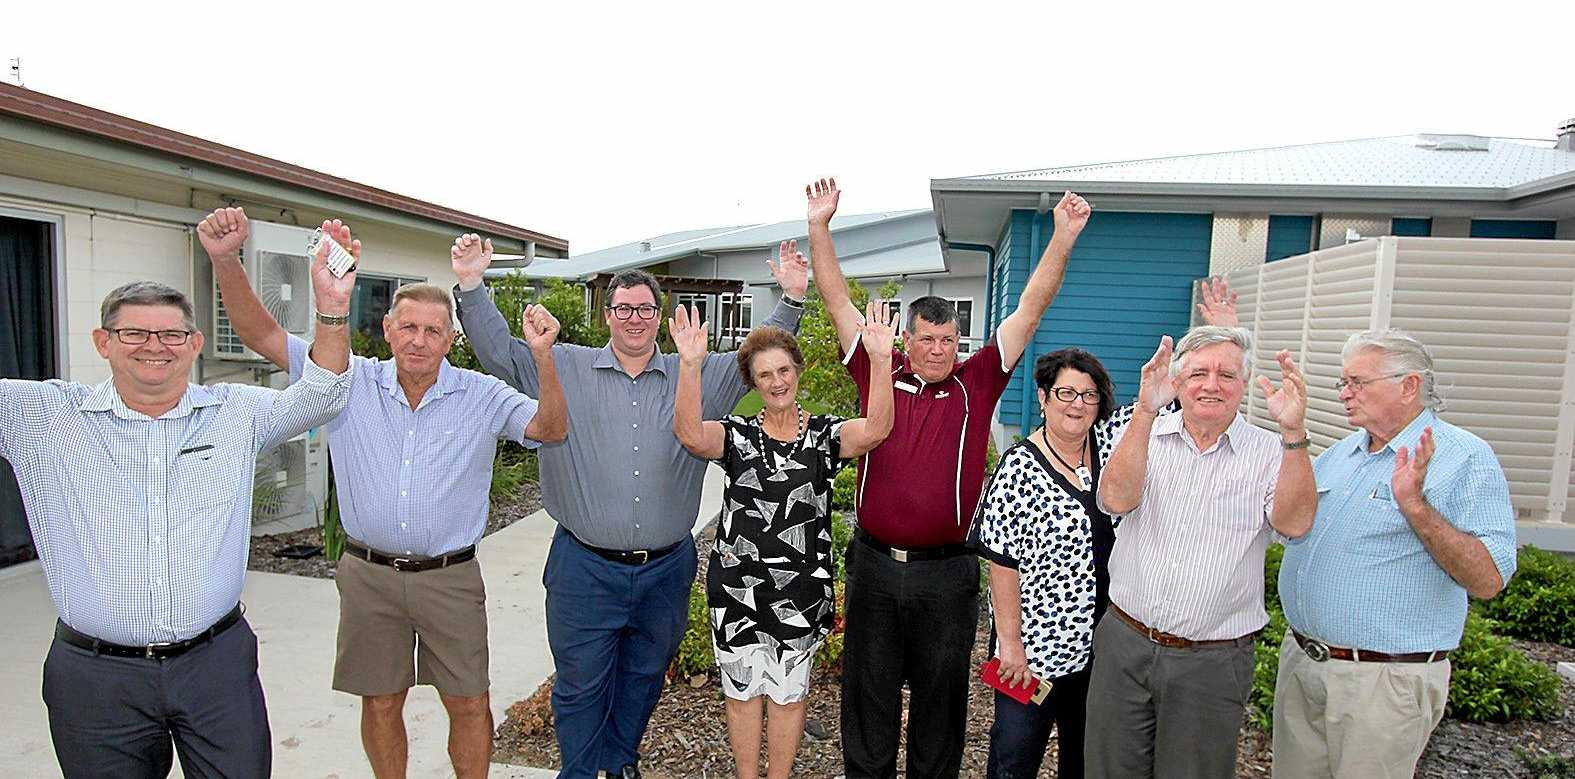 STOKED: Murroona Gardens residents are jumping for joy following the approval of 14 new residential aged care places. Pictured are Murroona Gardens CEO Greg Pollard, Gary Martin, Dawson MP George Christensen, Ruth Morton, Ross Meyer, director of nursing Megan Murray, Kevin Baxter, Adrian Tilney and Michael Reinke.